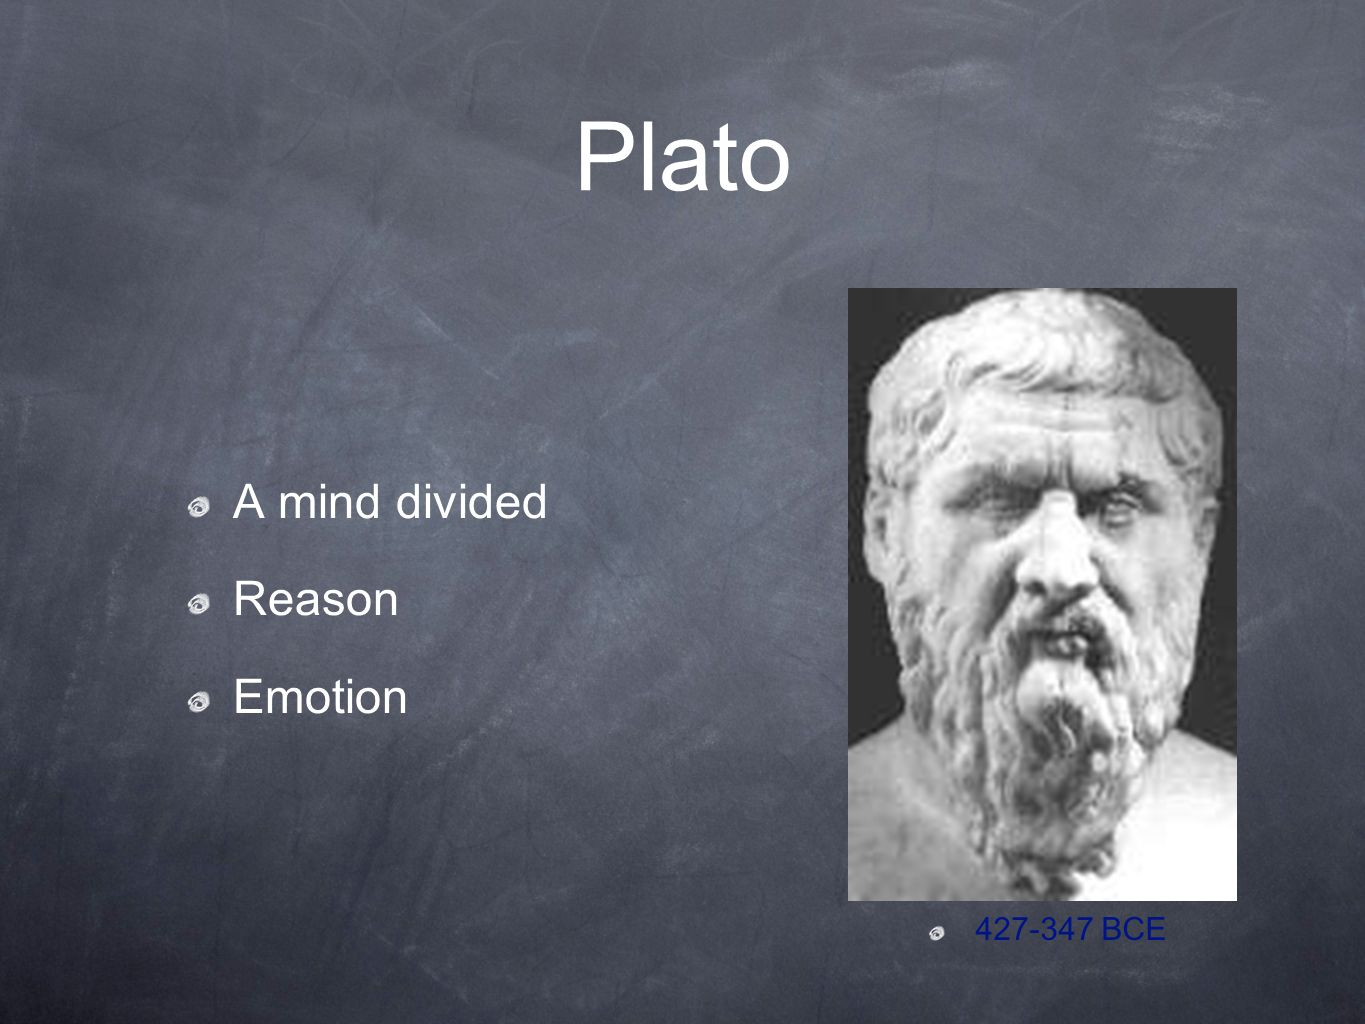 Plato A mind divided Reason Emotion BCE